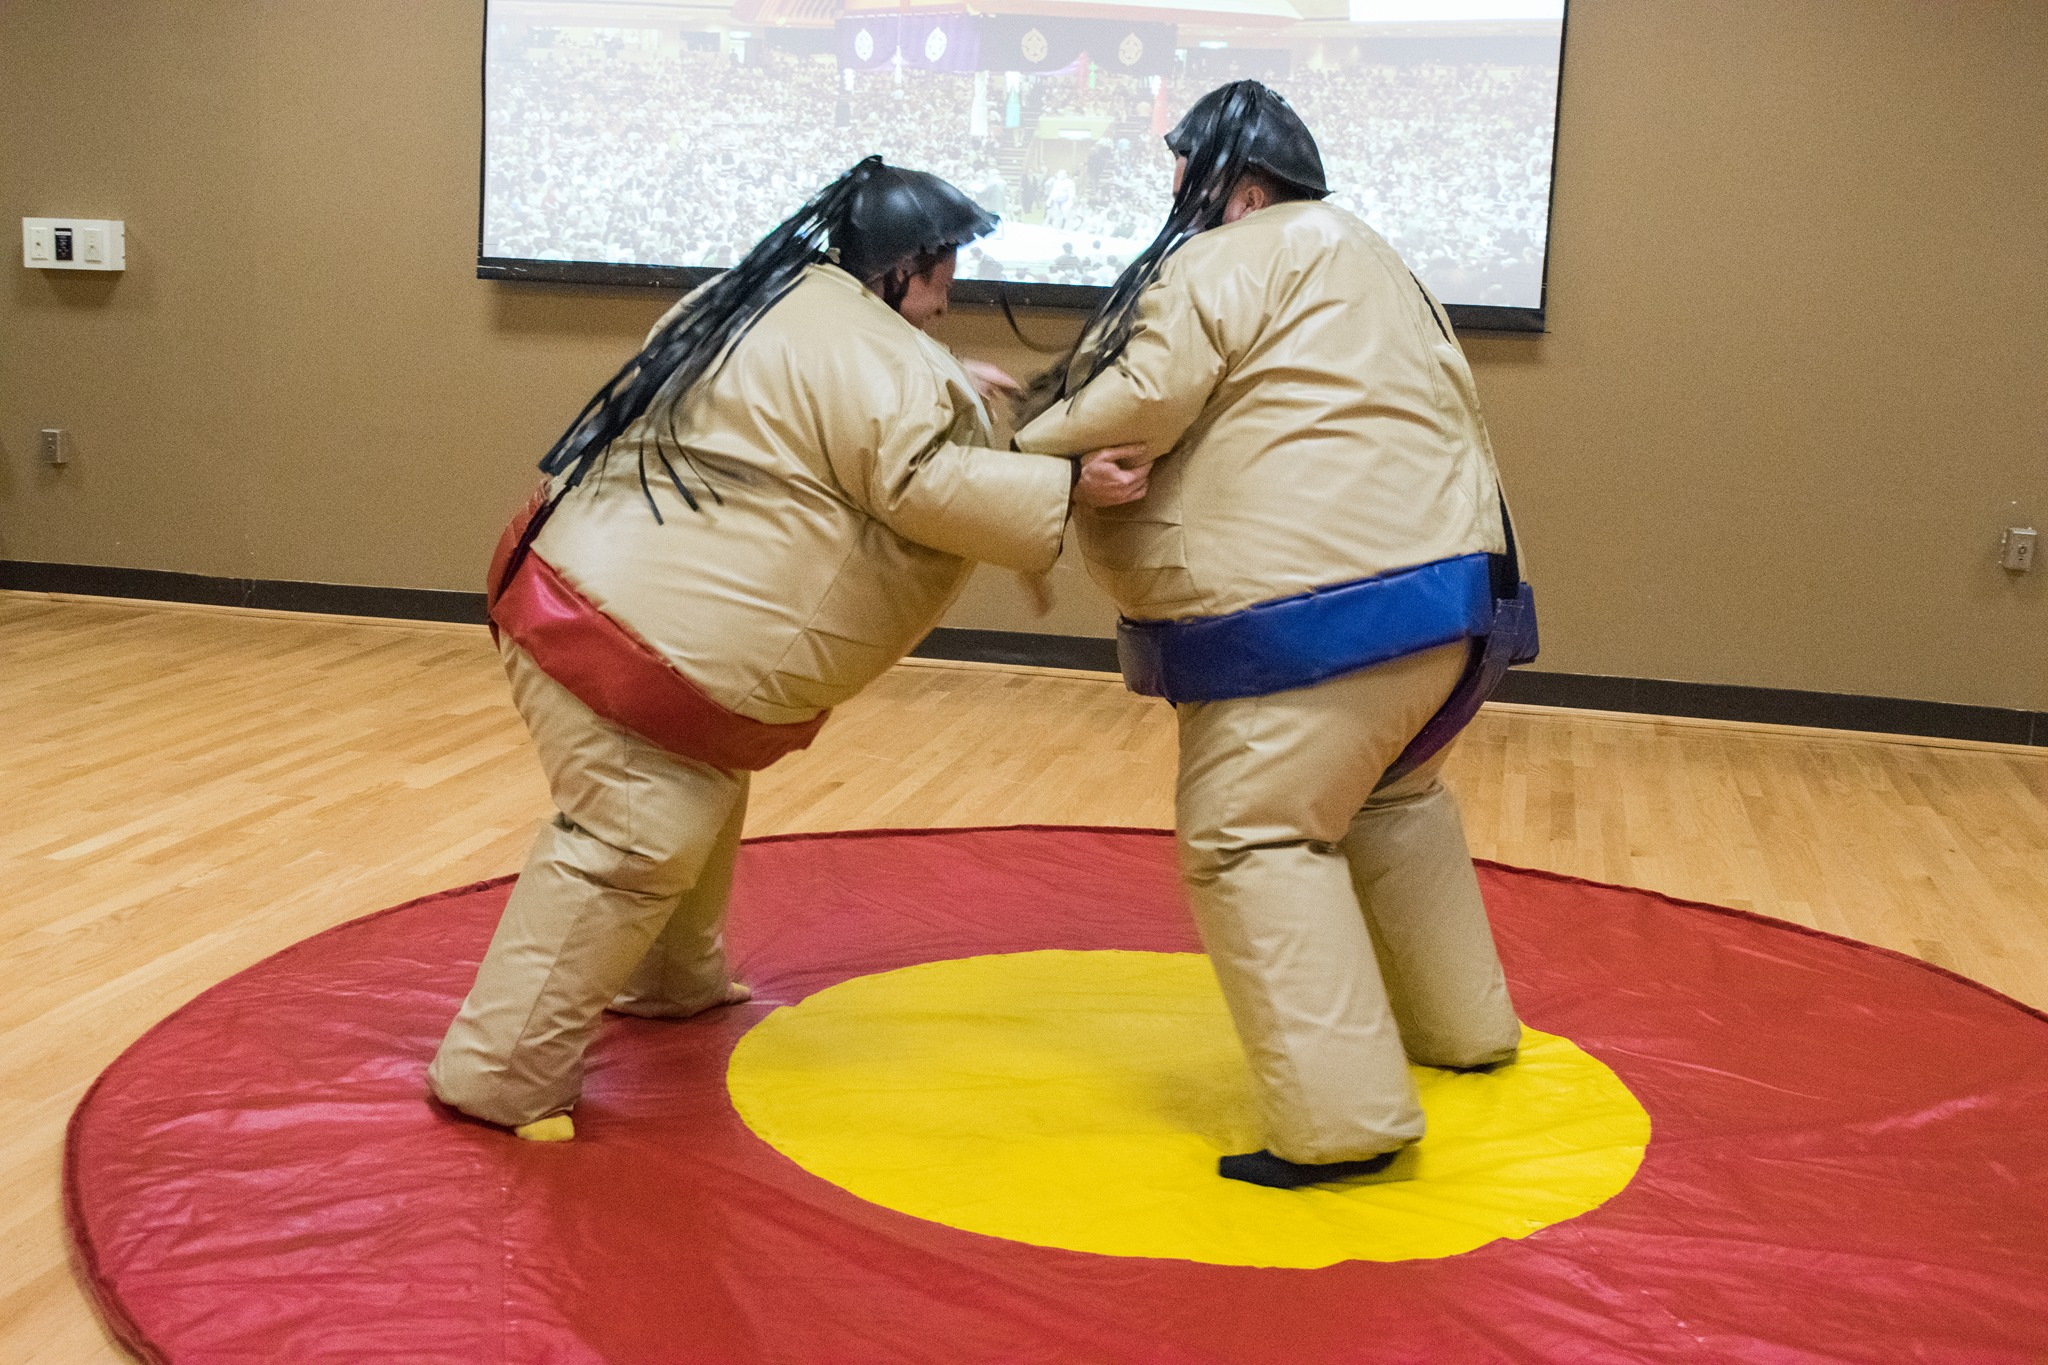 Tim Hackenberg, a third year architecture major, and Jarek Diehl, a third year interior architecture major, face off in a sumo wrestling match.